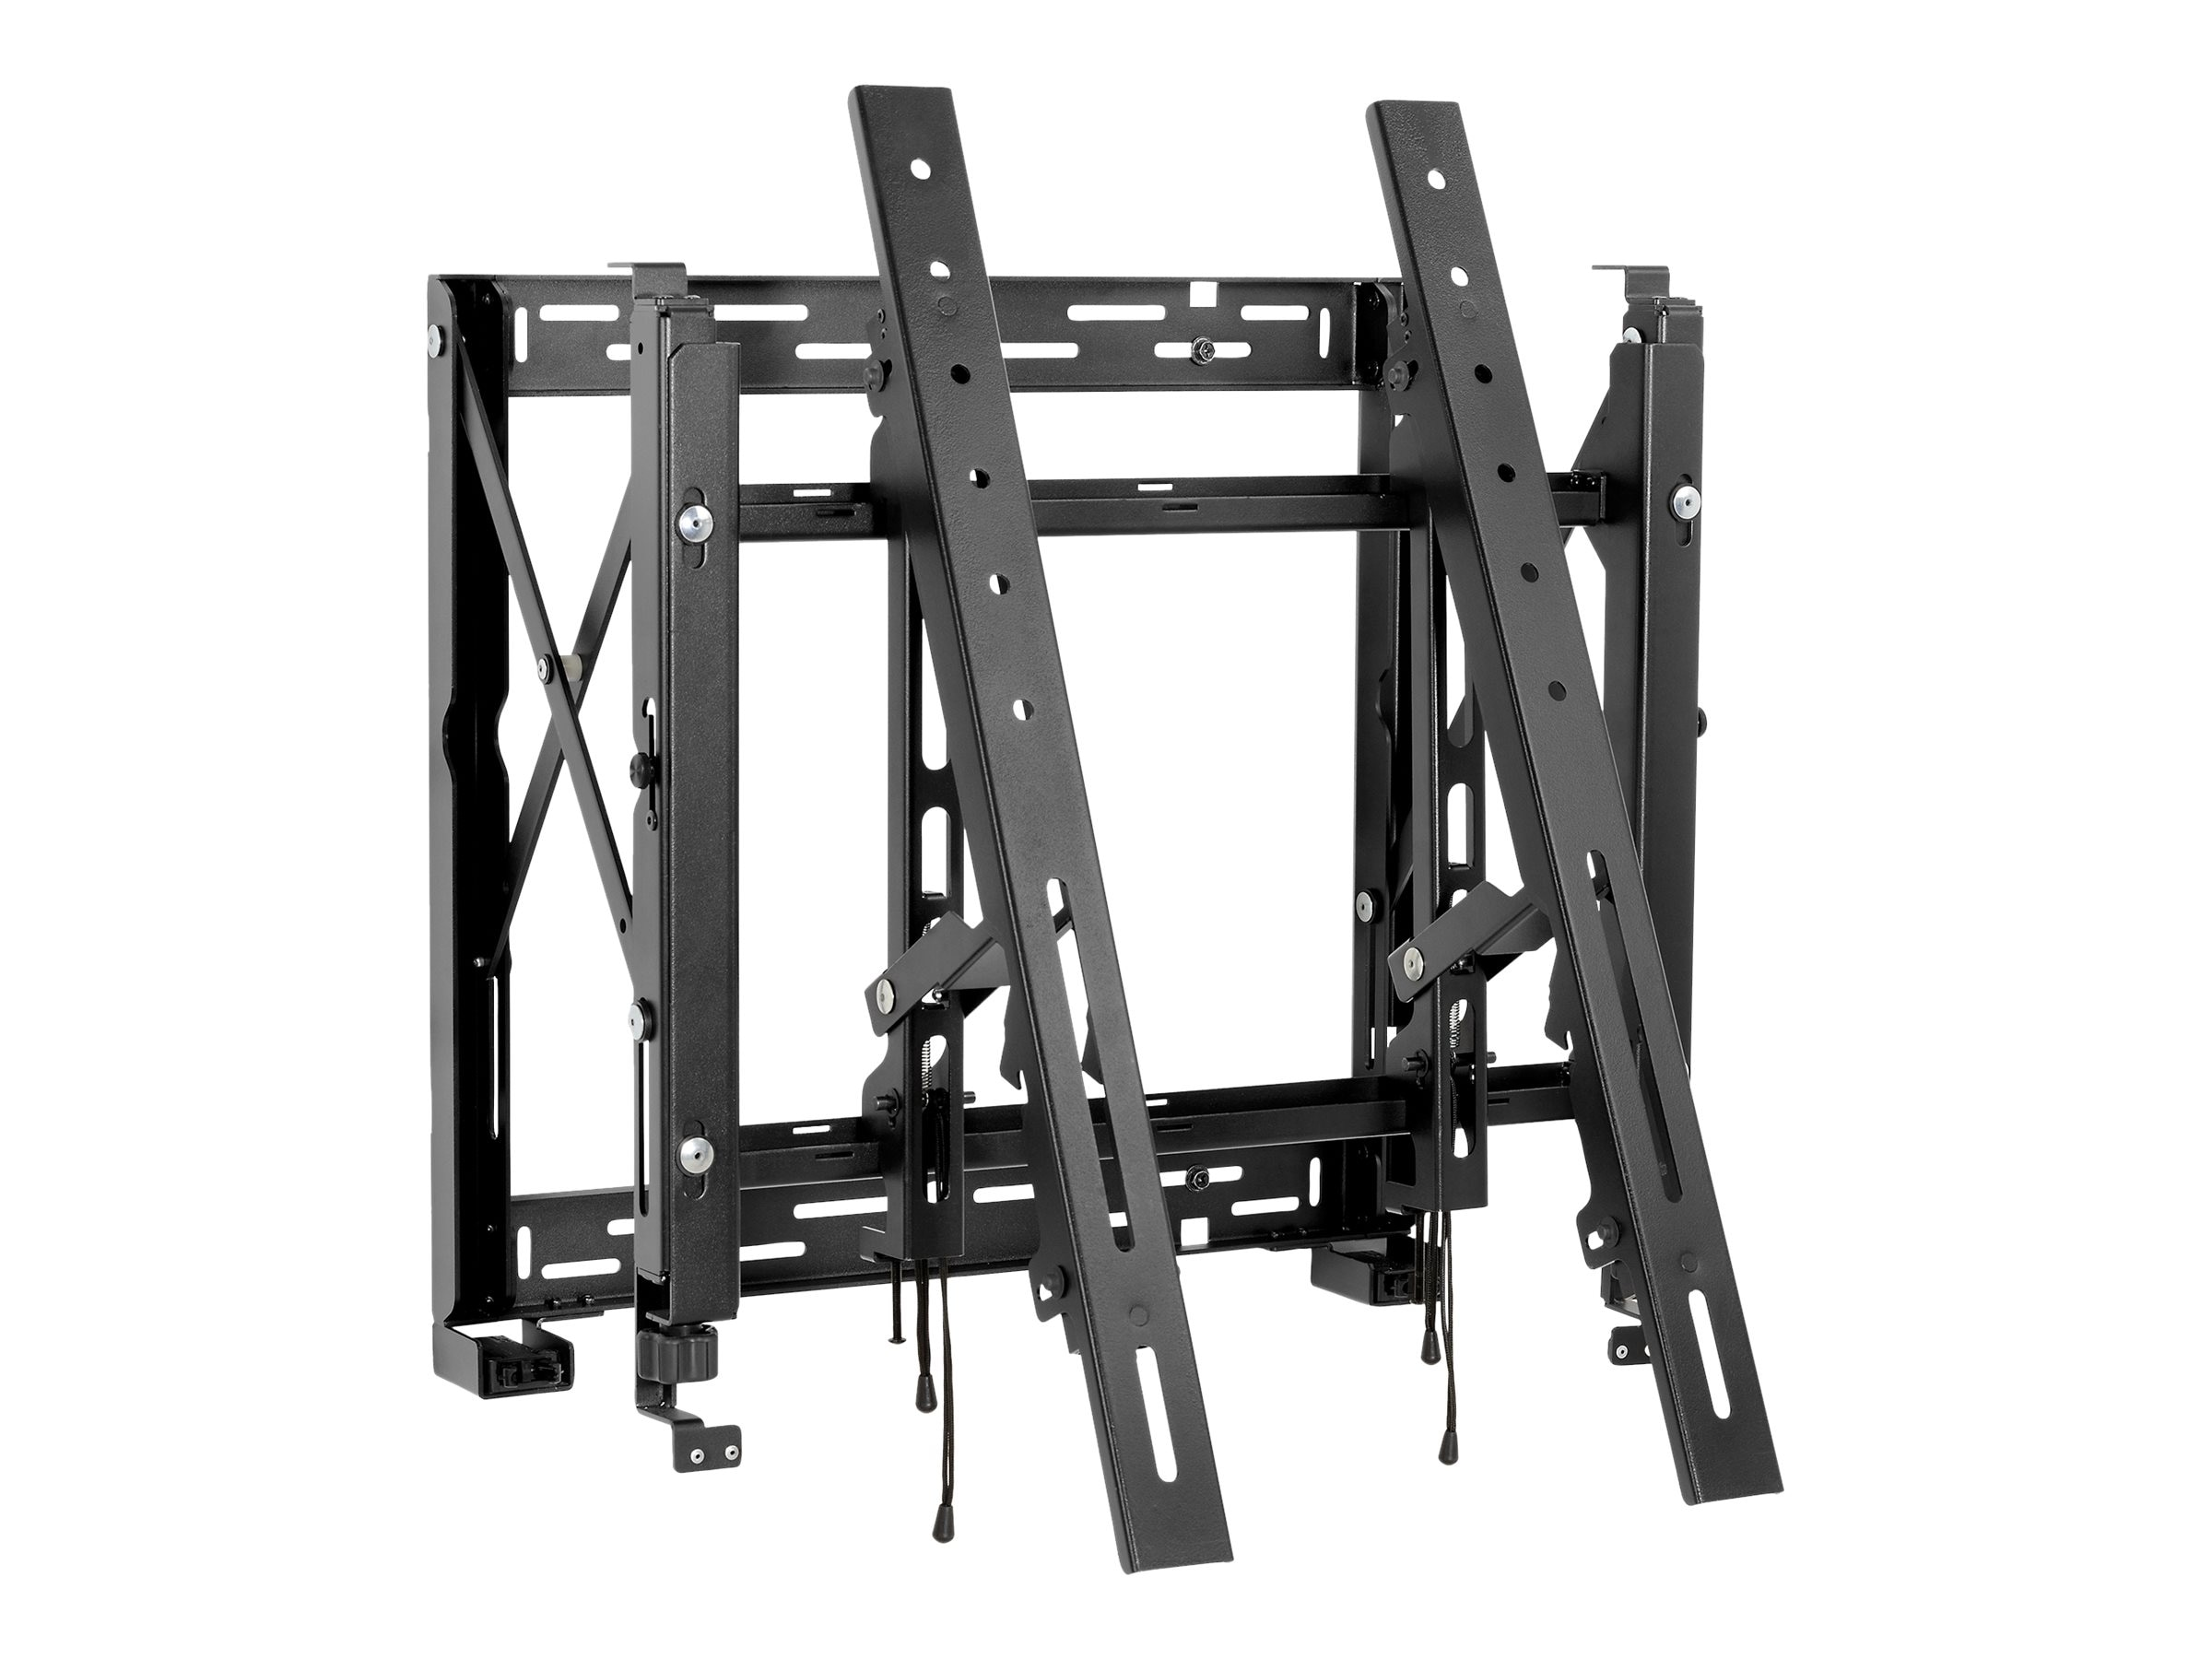 Peerless Full-Service Video Wall Mount with Quick Release - Portrait for 42 to 65 Displays, DS-VW765-PQR, 16896446, Stands & Mounts - AV